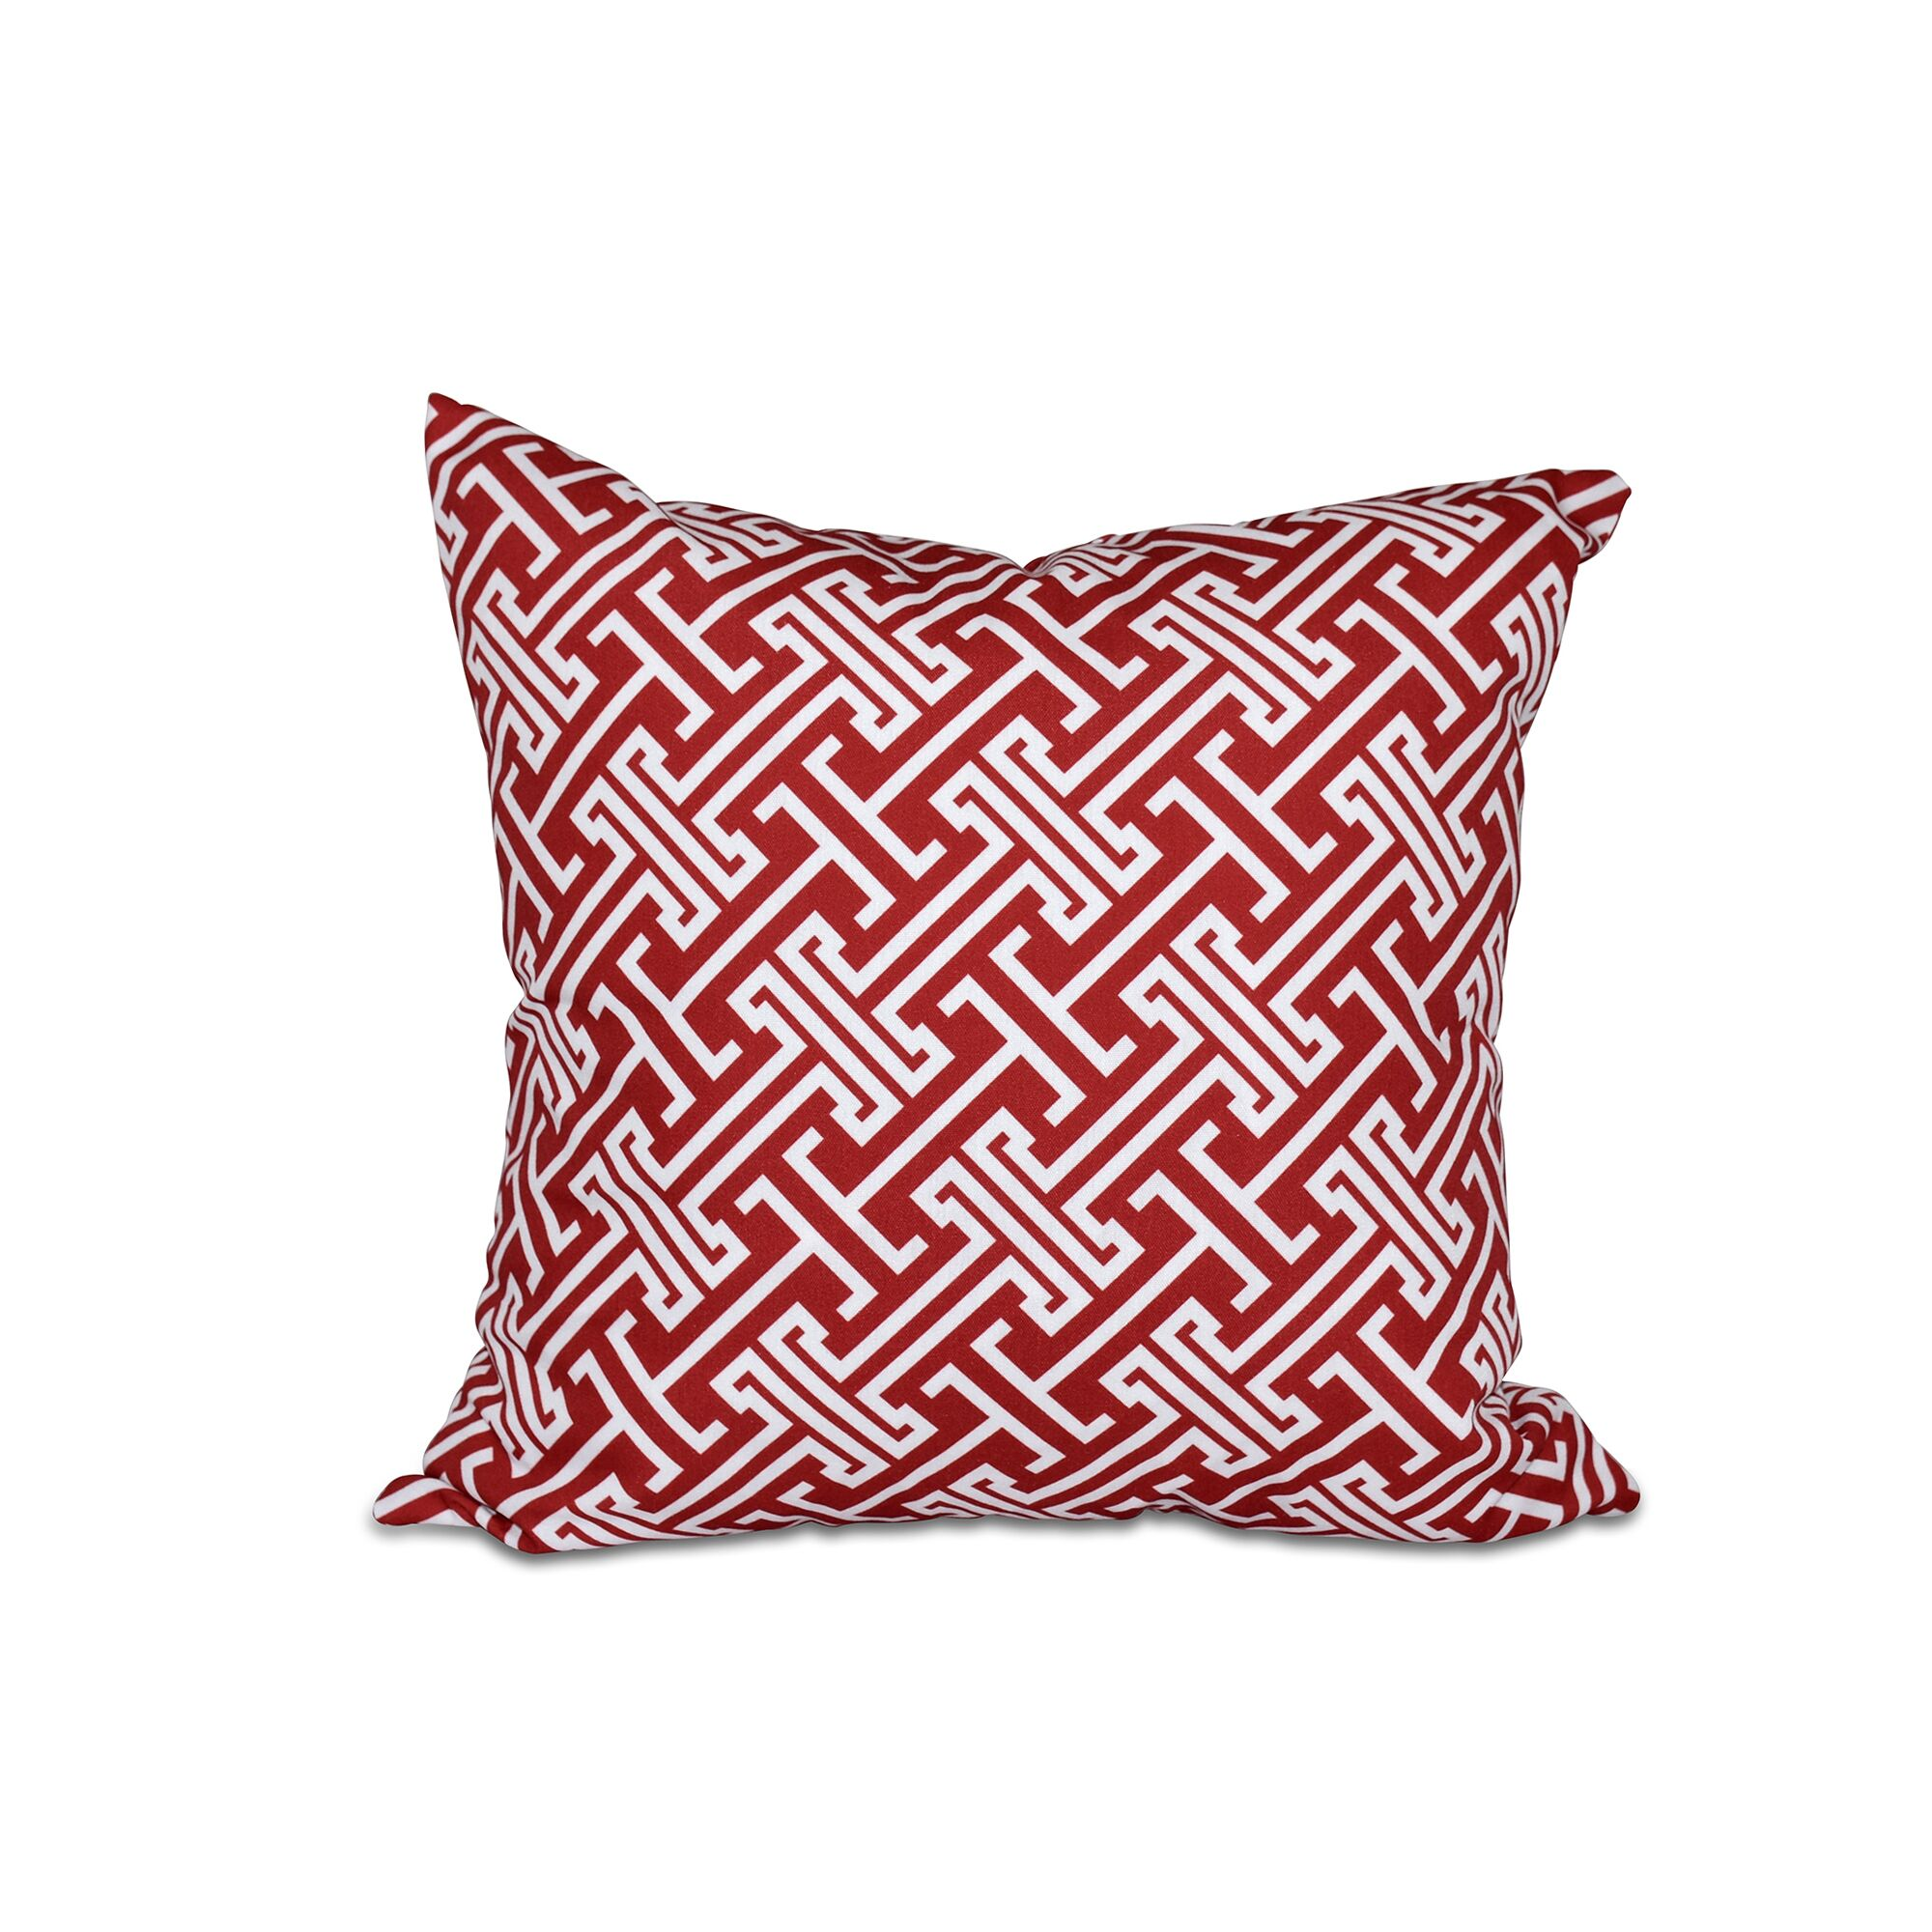 Hancock Leeward Key Geometric Throw Pillow (Set of 2) Size: 20